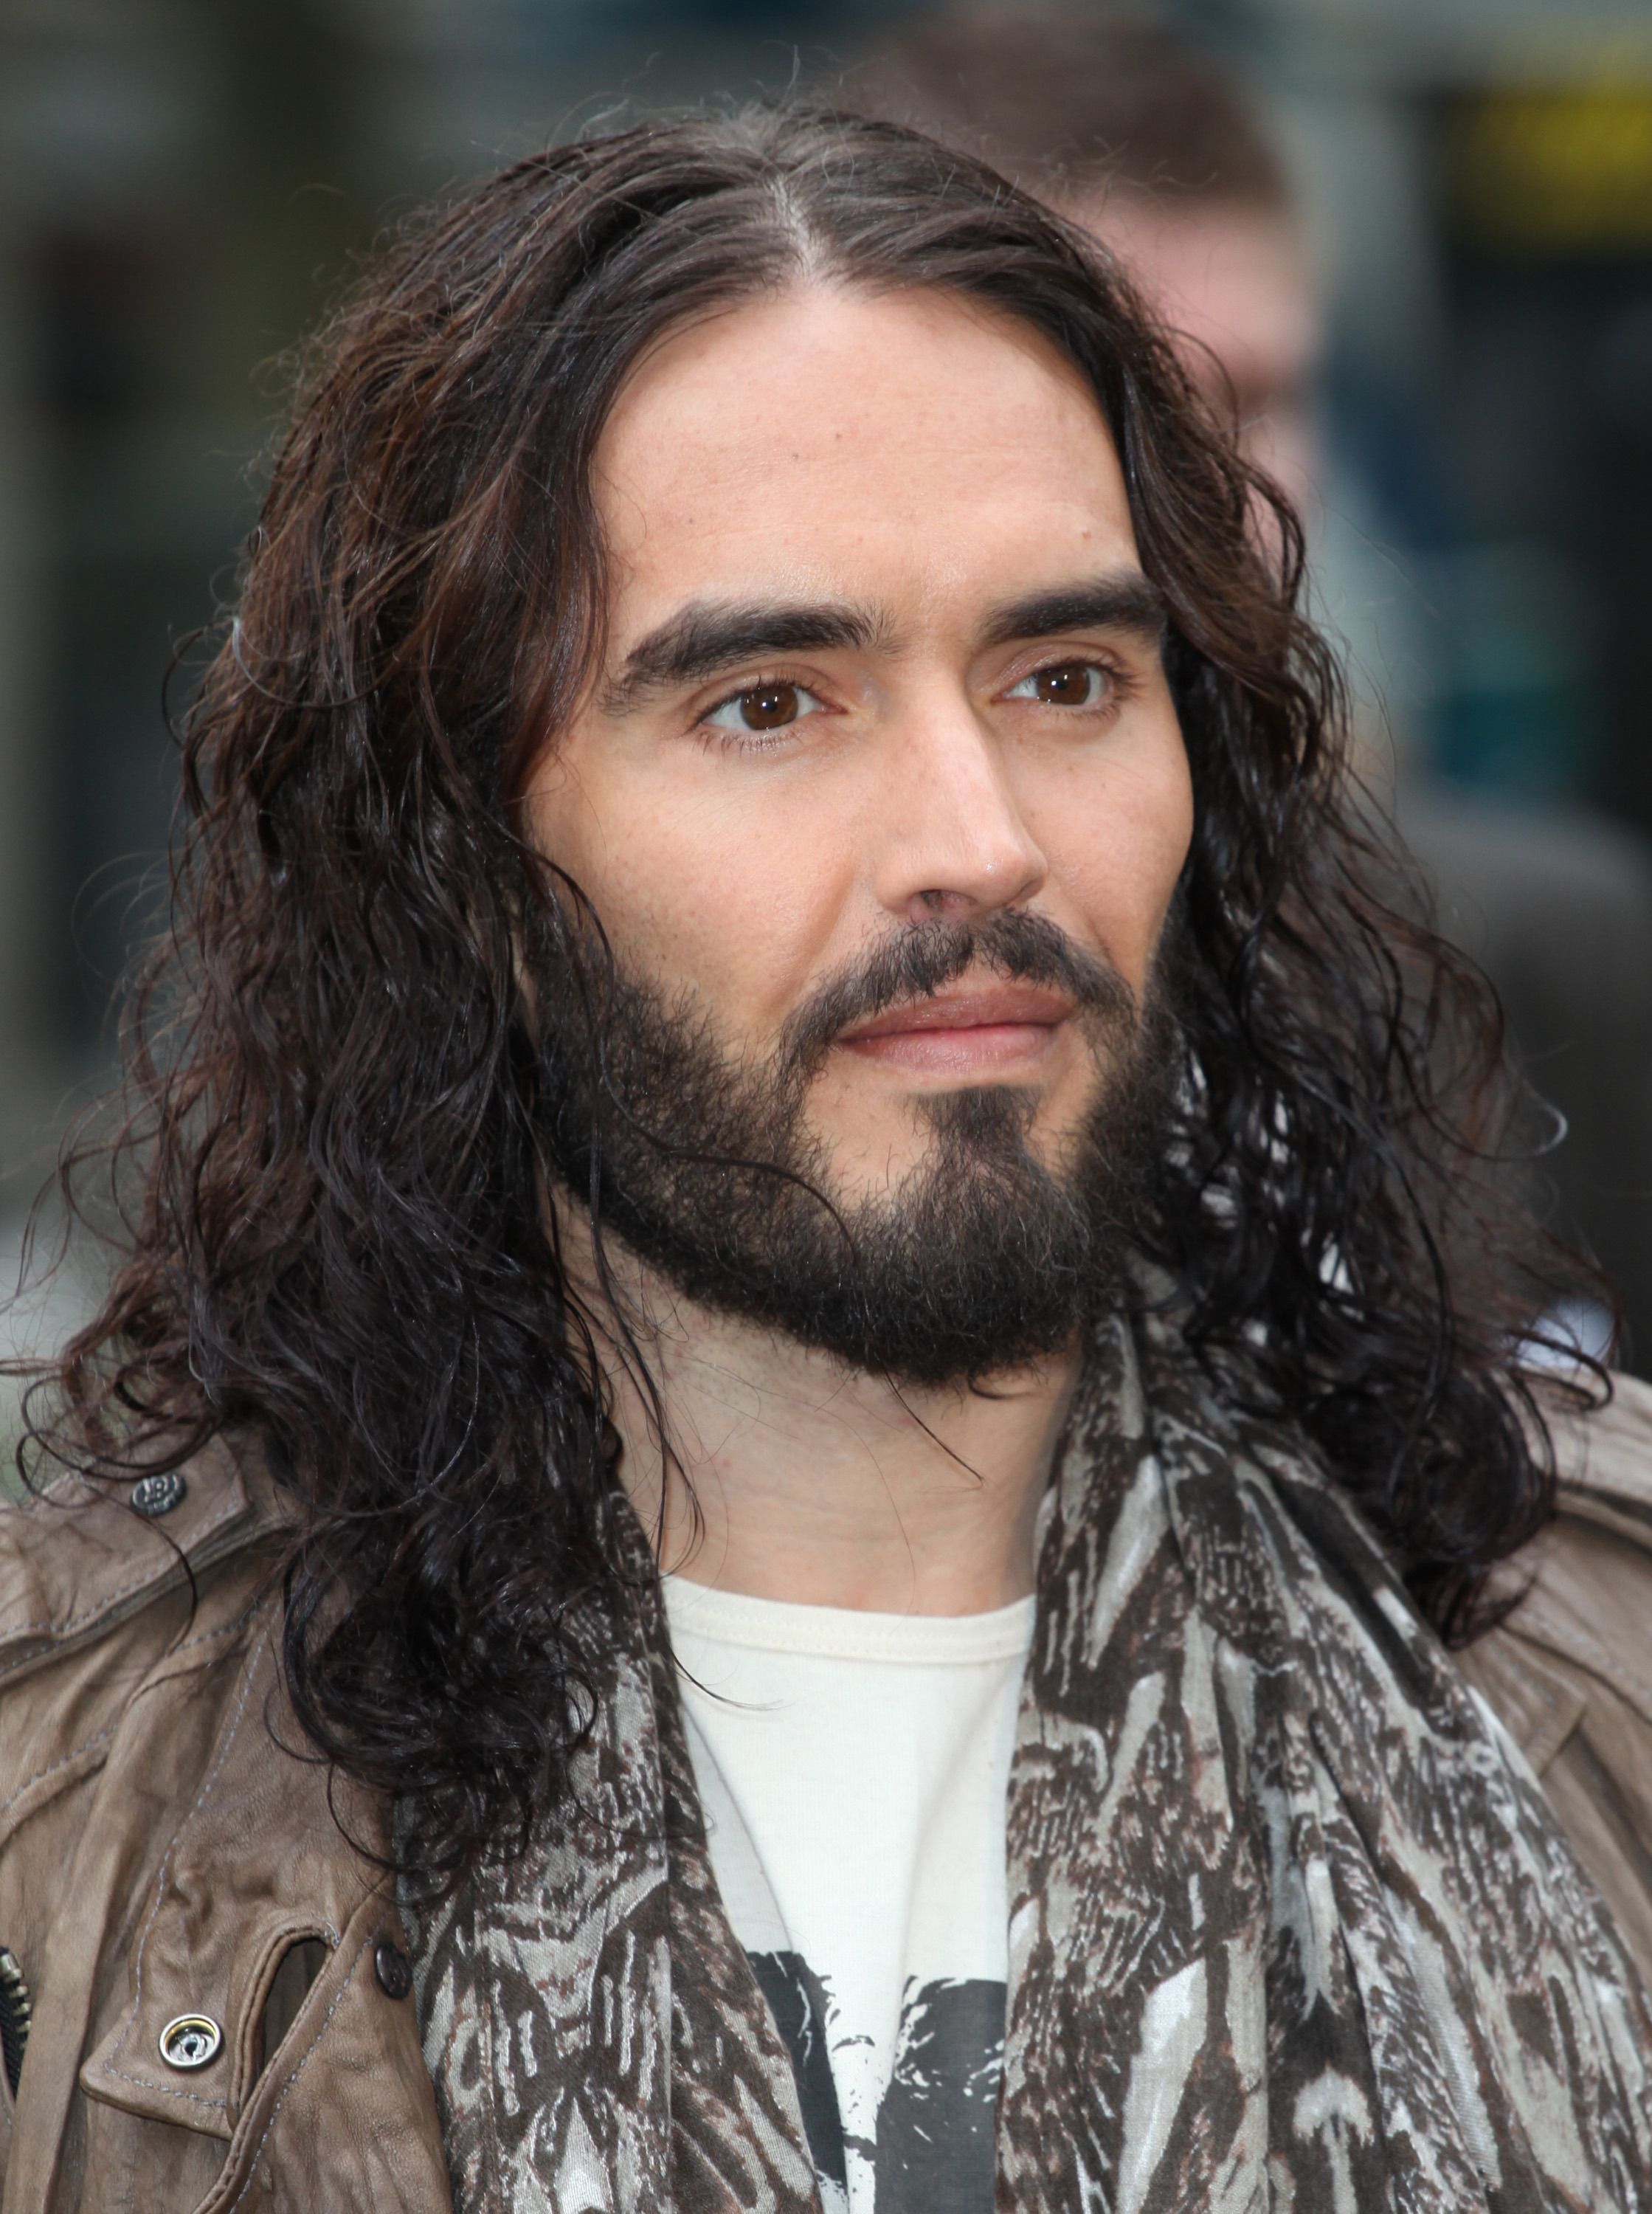 10. Russell Brand